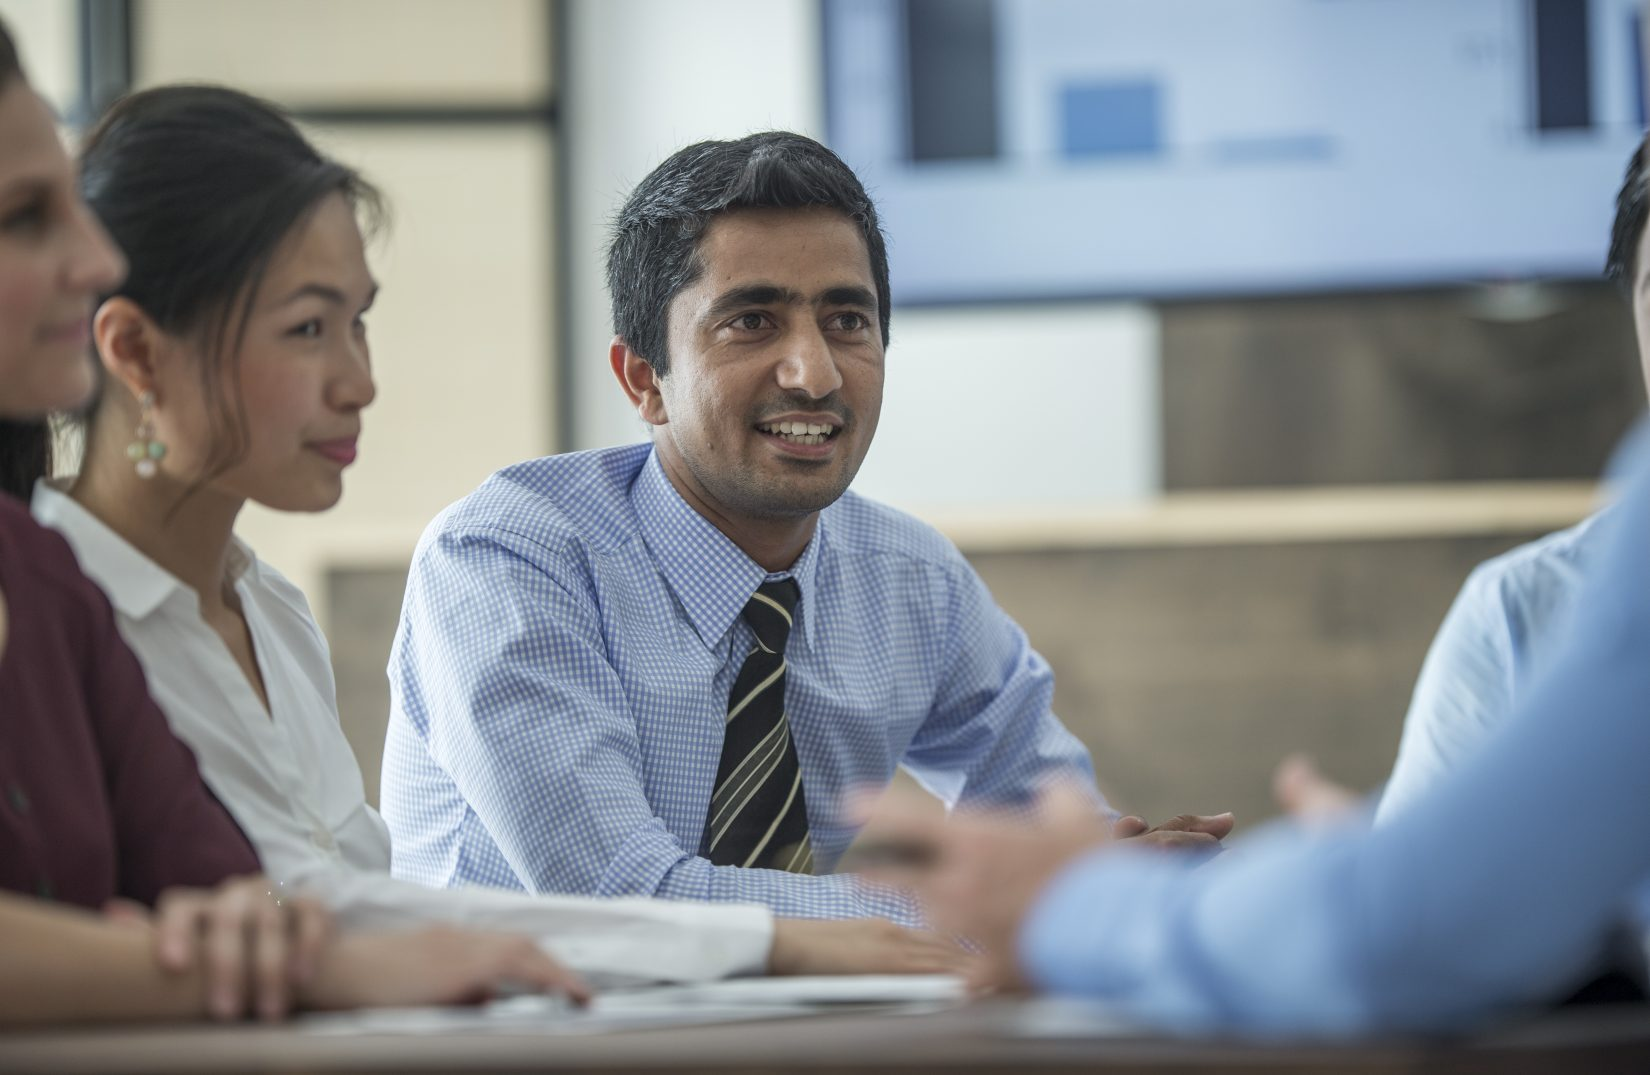 A multi-ethnic group of business professionals are working together in a boardroom corporate office.